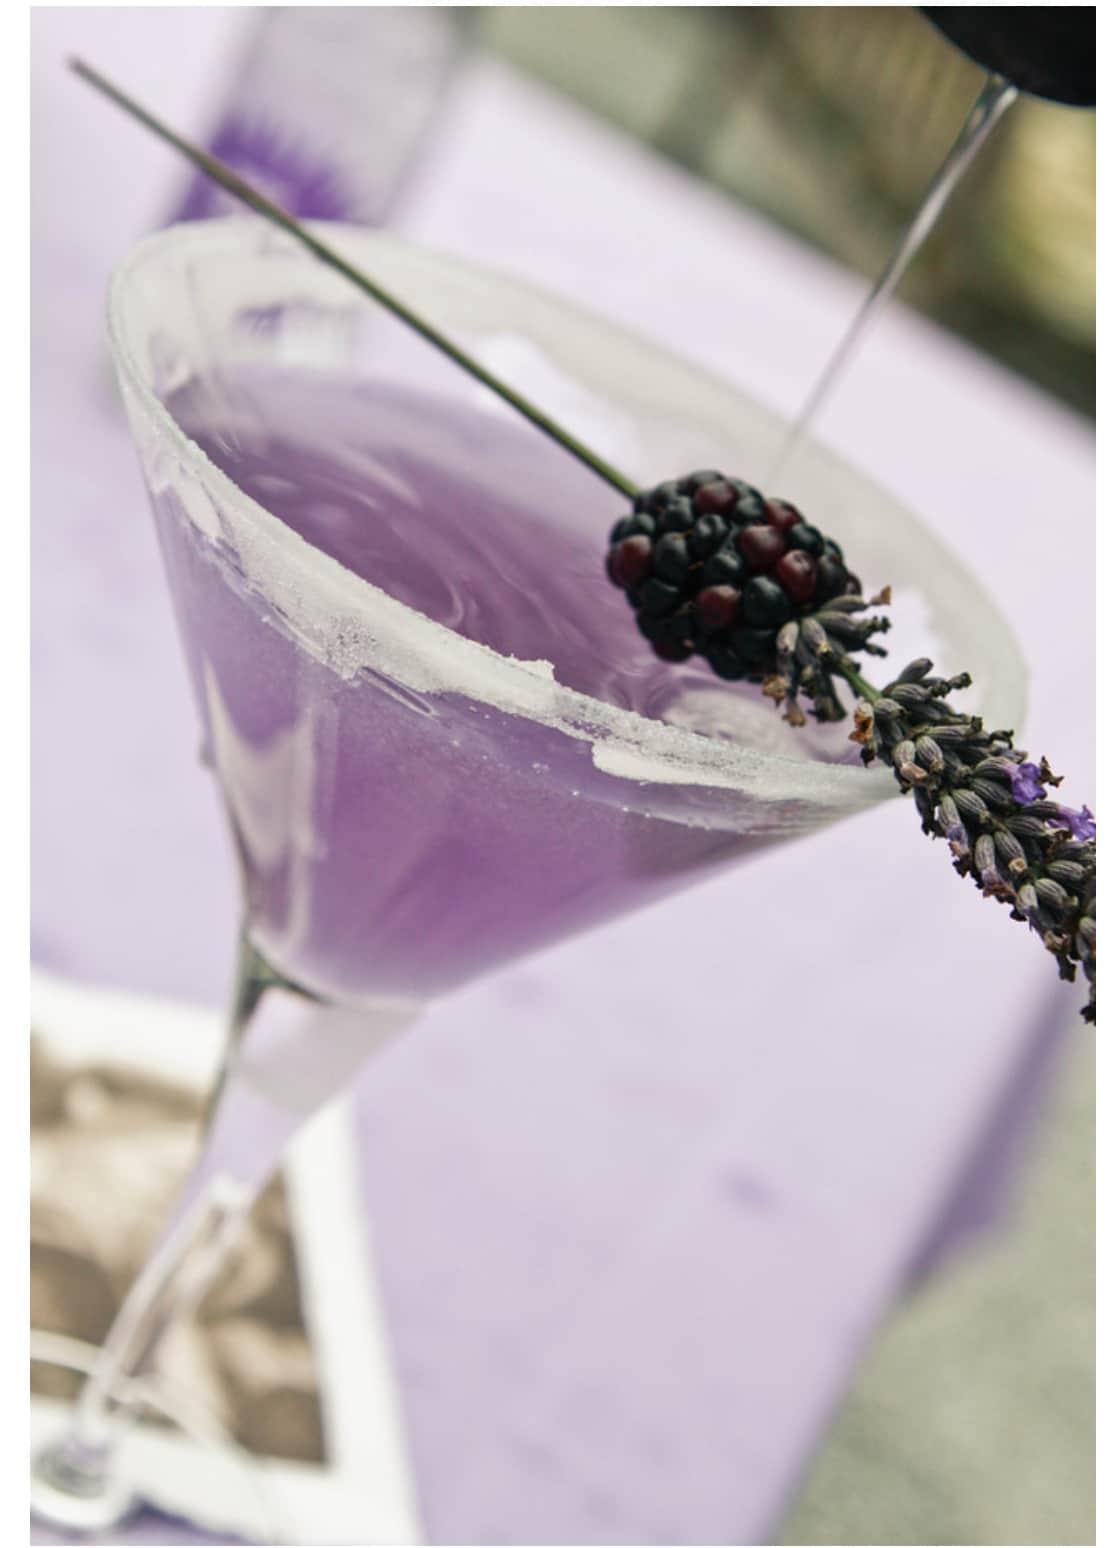 Lavender blackberry Martini Drop Cocktail by Swoon Talent's lifestyle expert Monica Hart